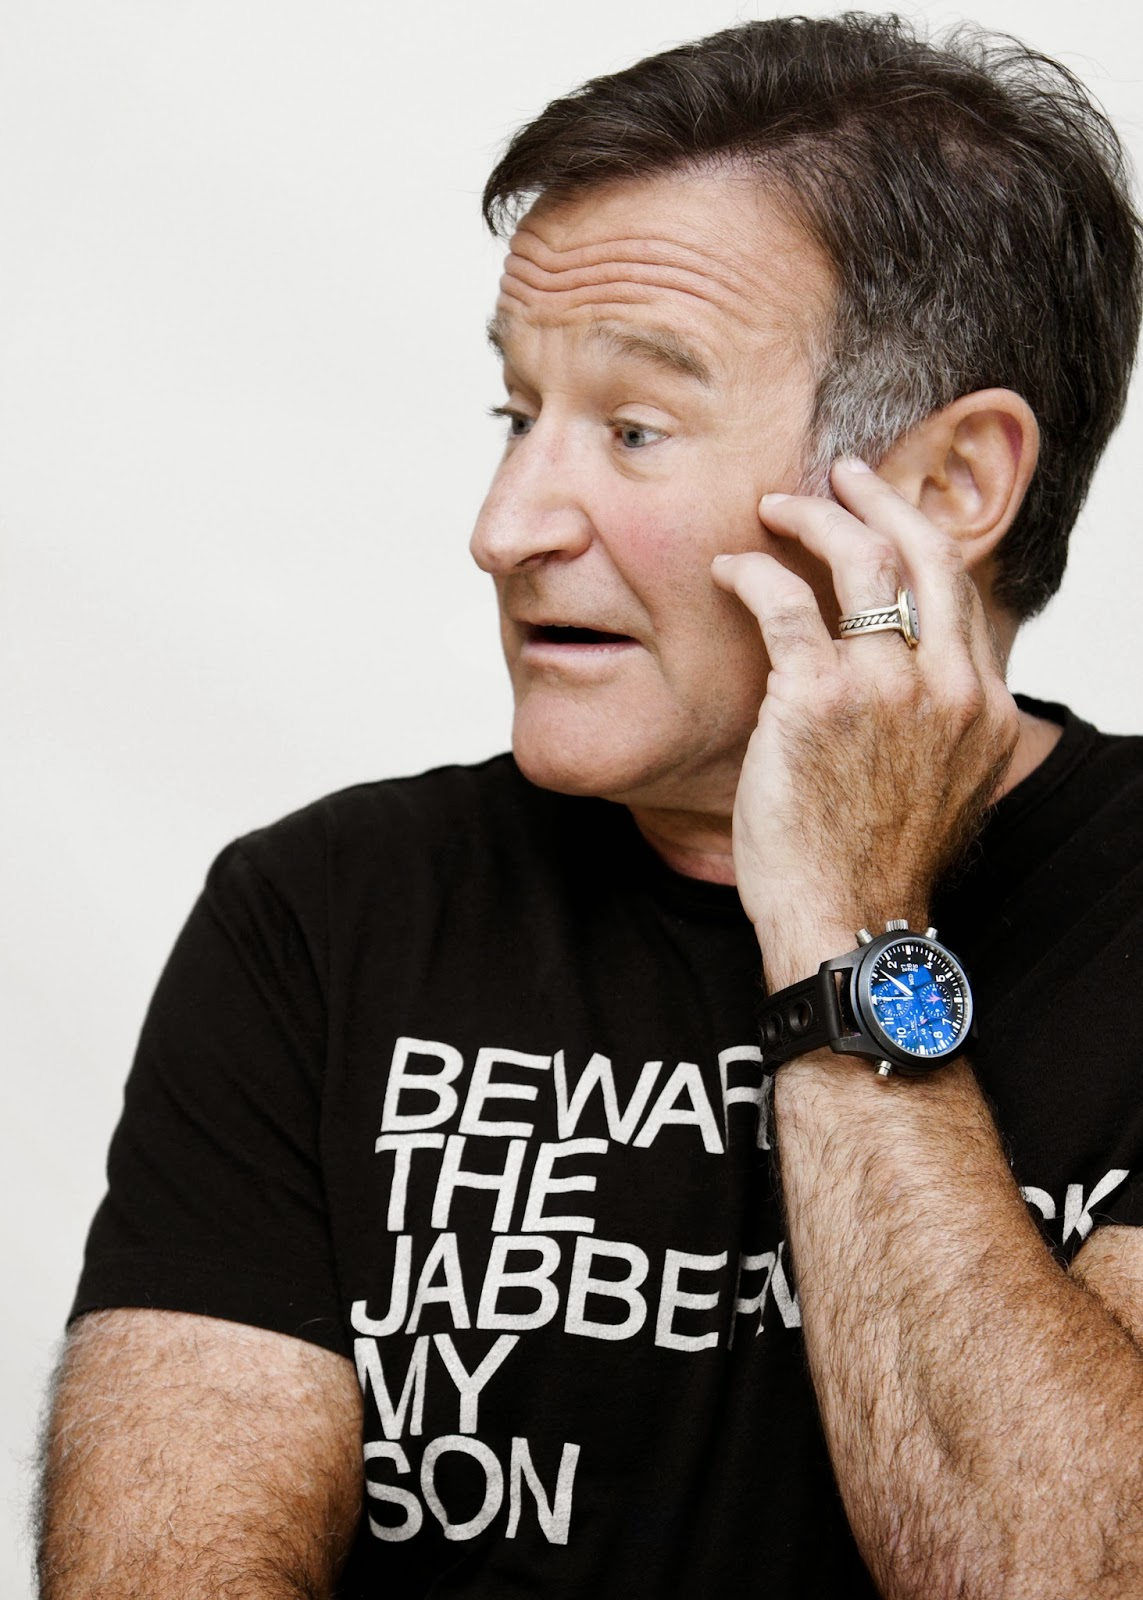 Robin Williams commits suicide, 11 Aug 2014